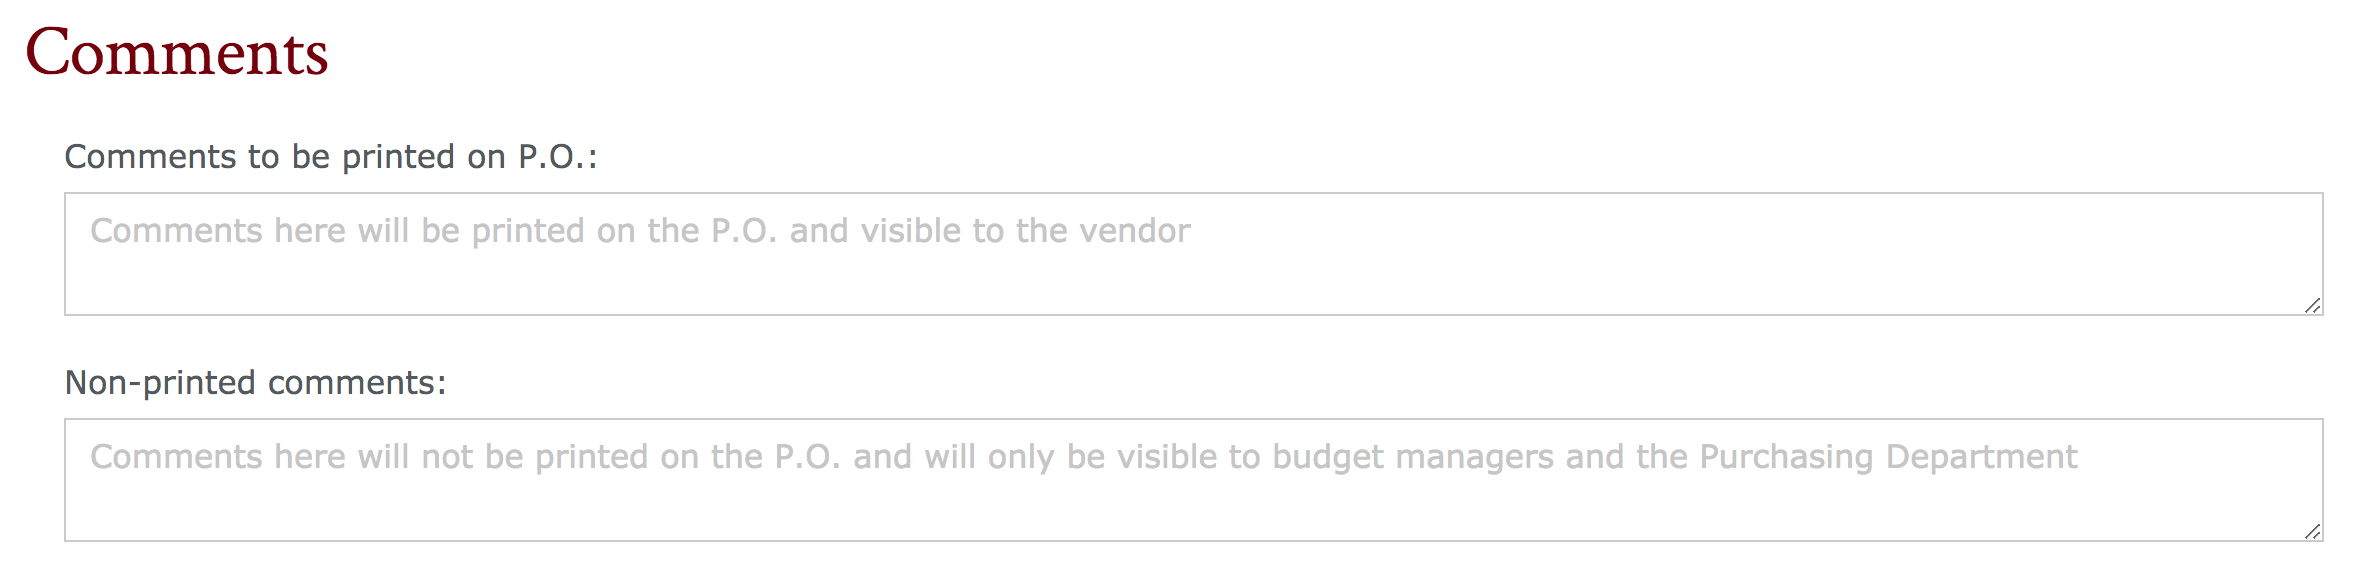 comments section of the purchase request form